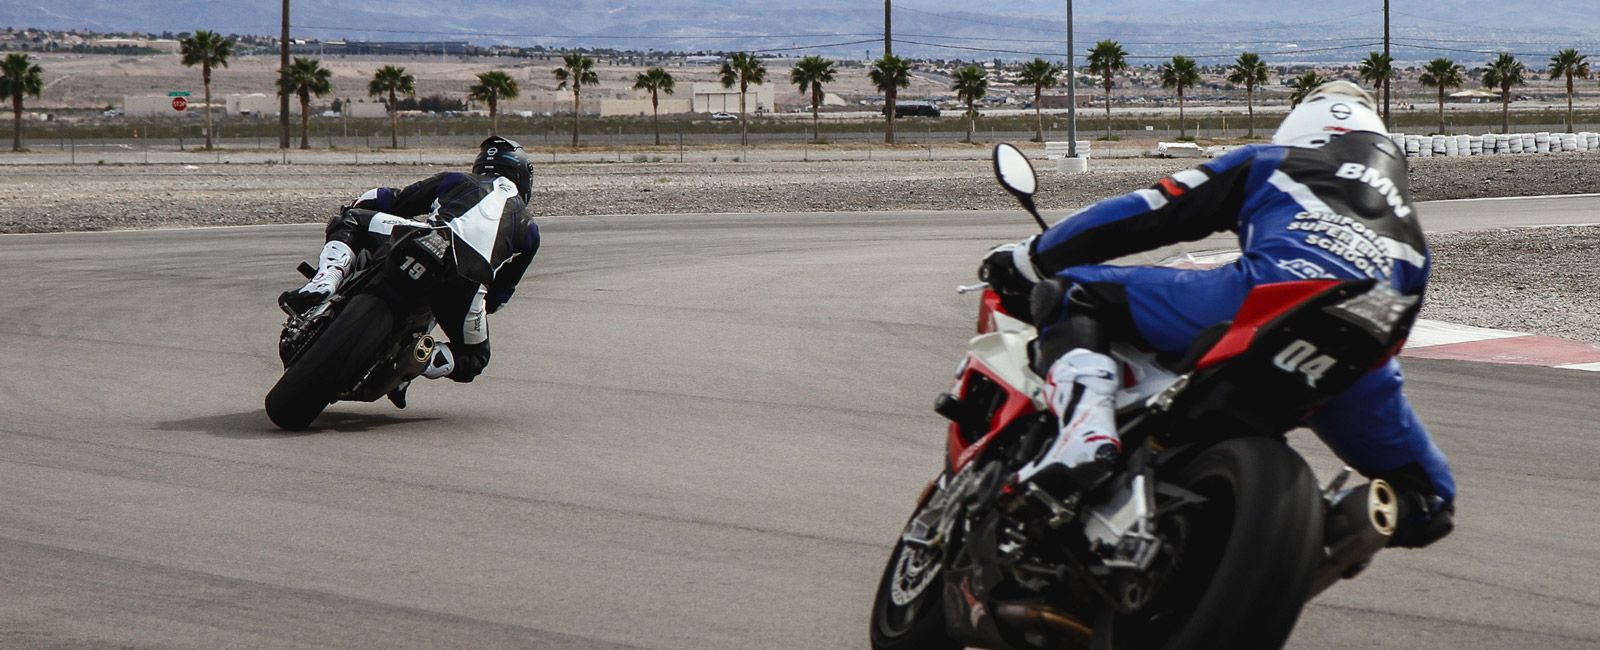 Superbike-School-Gear-Patrol-Ambiance-2